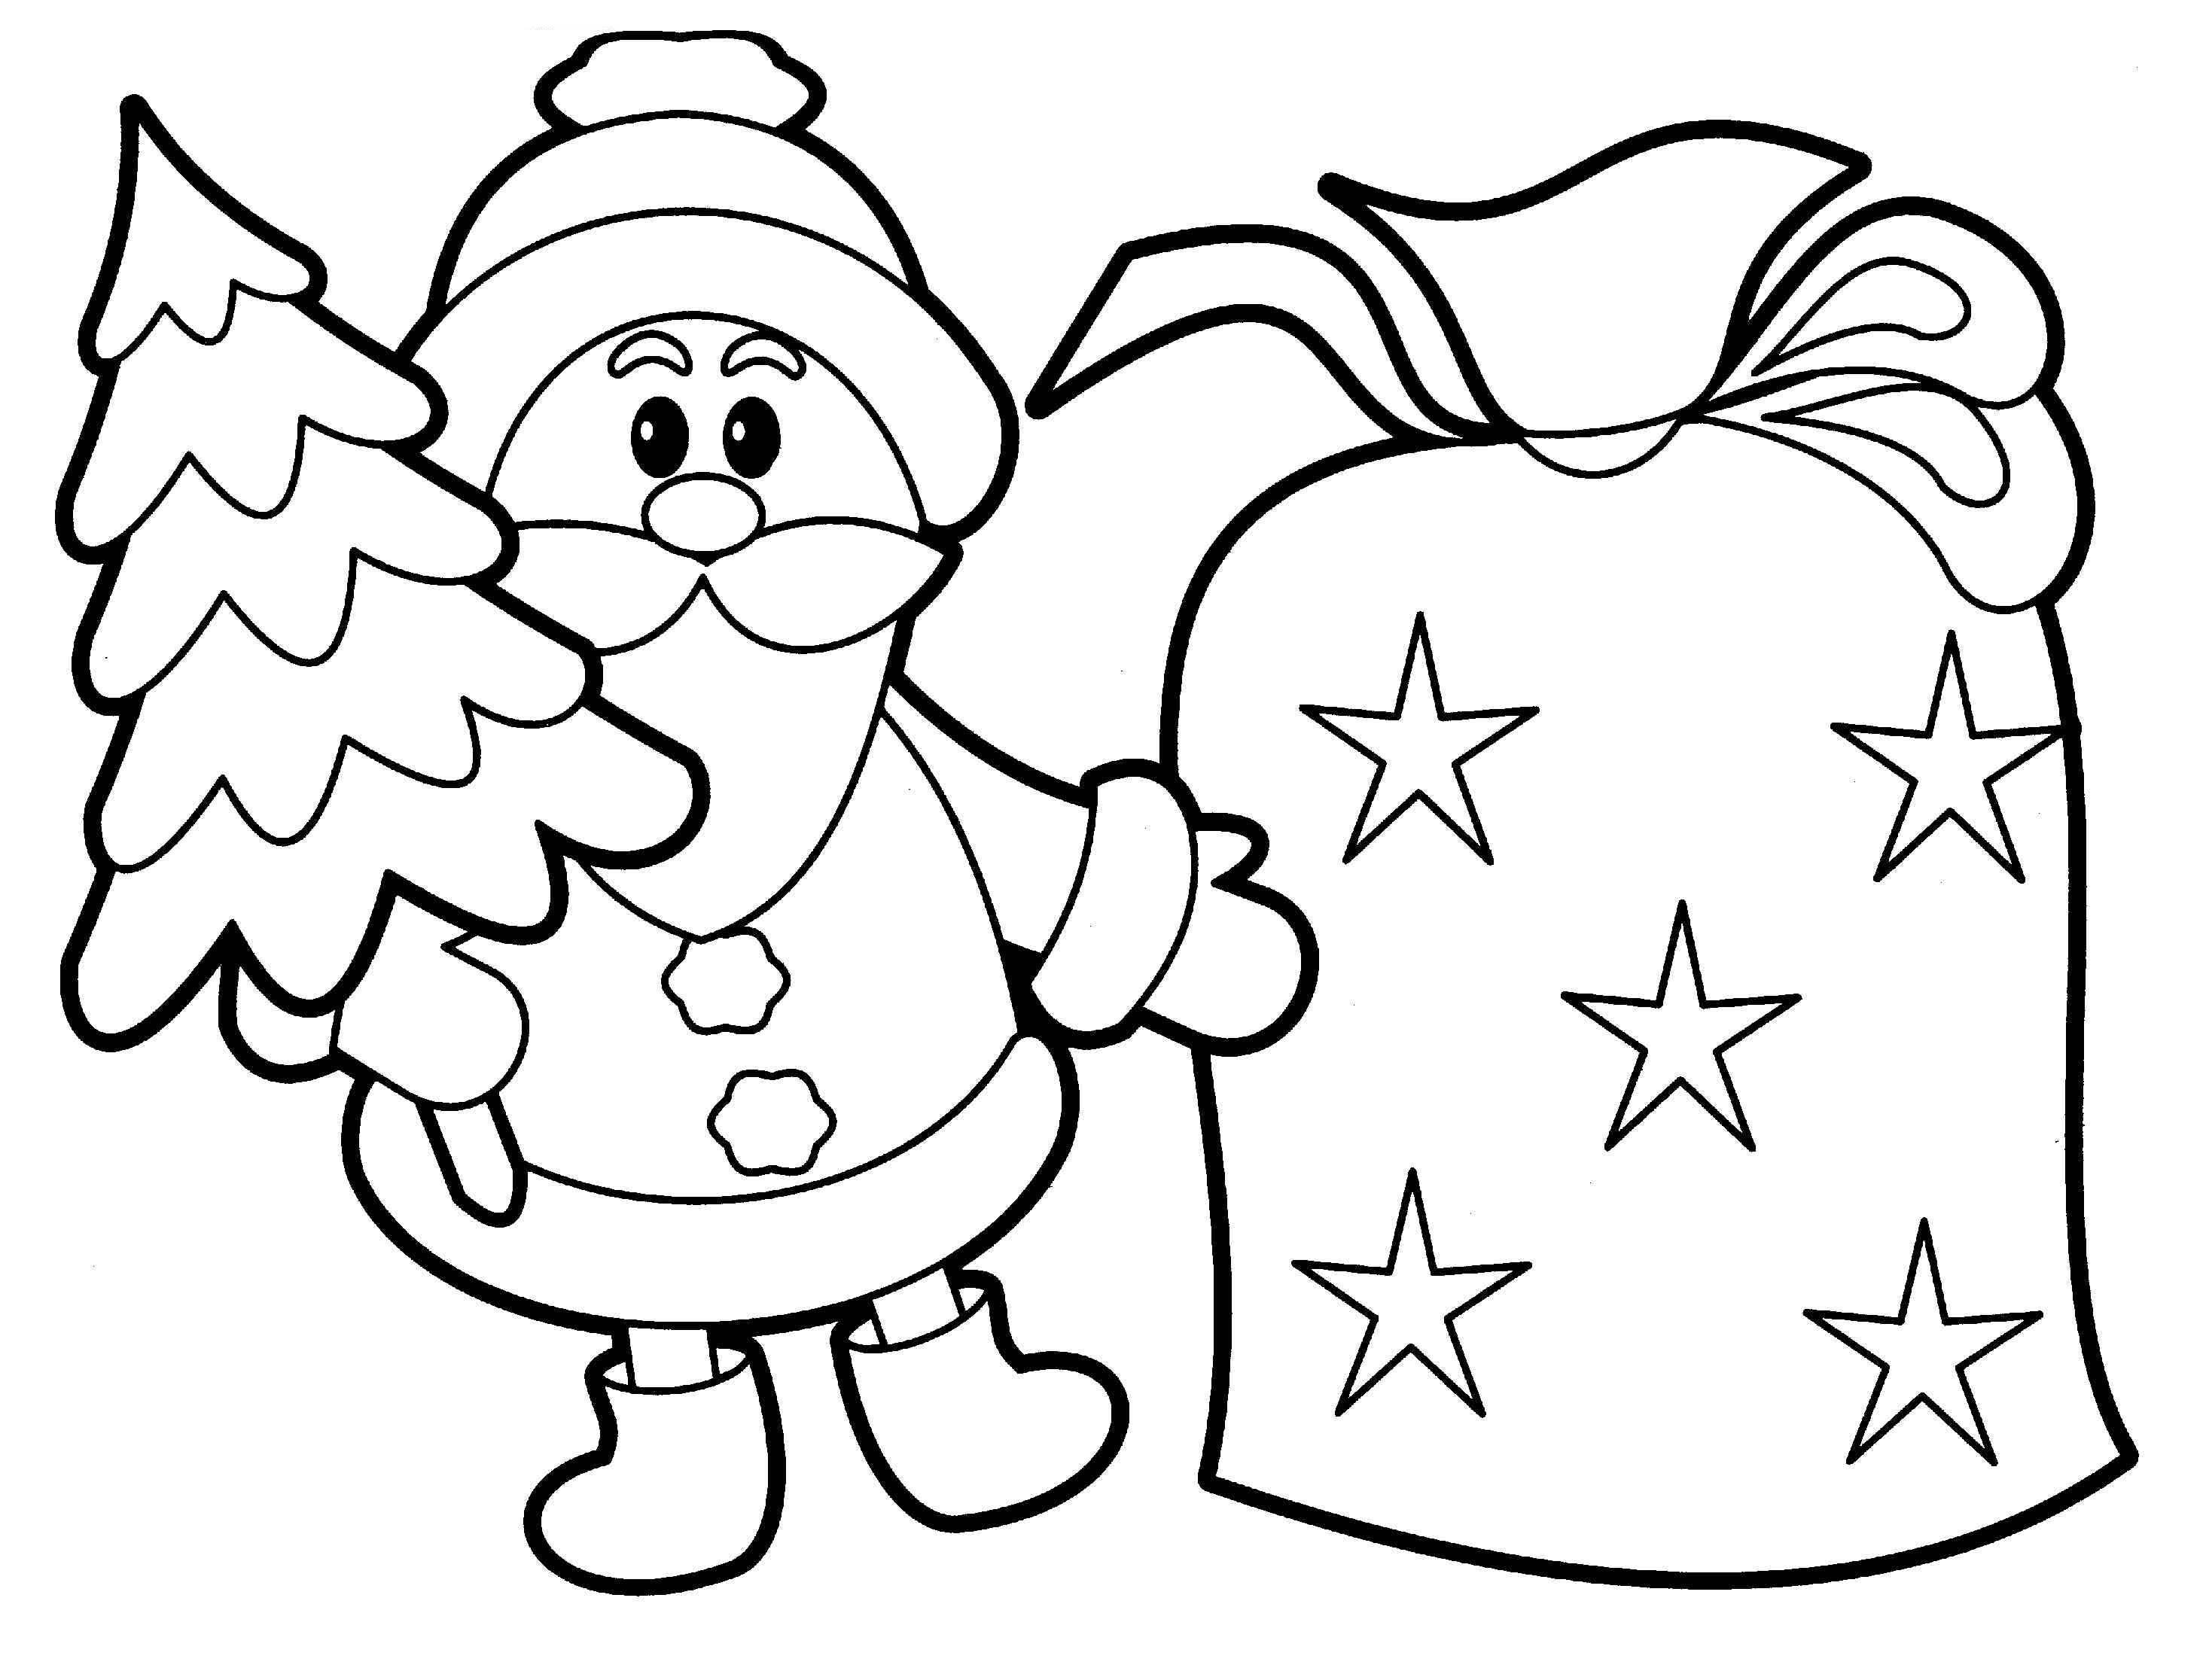 Coloring sheets for preschool - Christmas Printable Preschool Coloring Pages